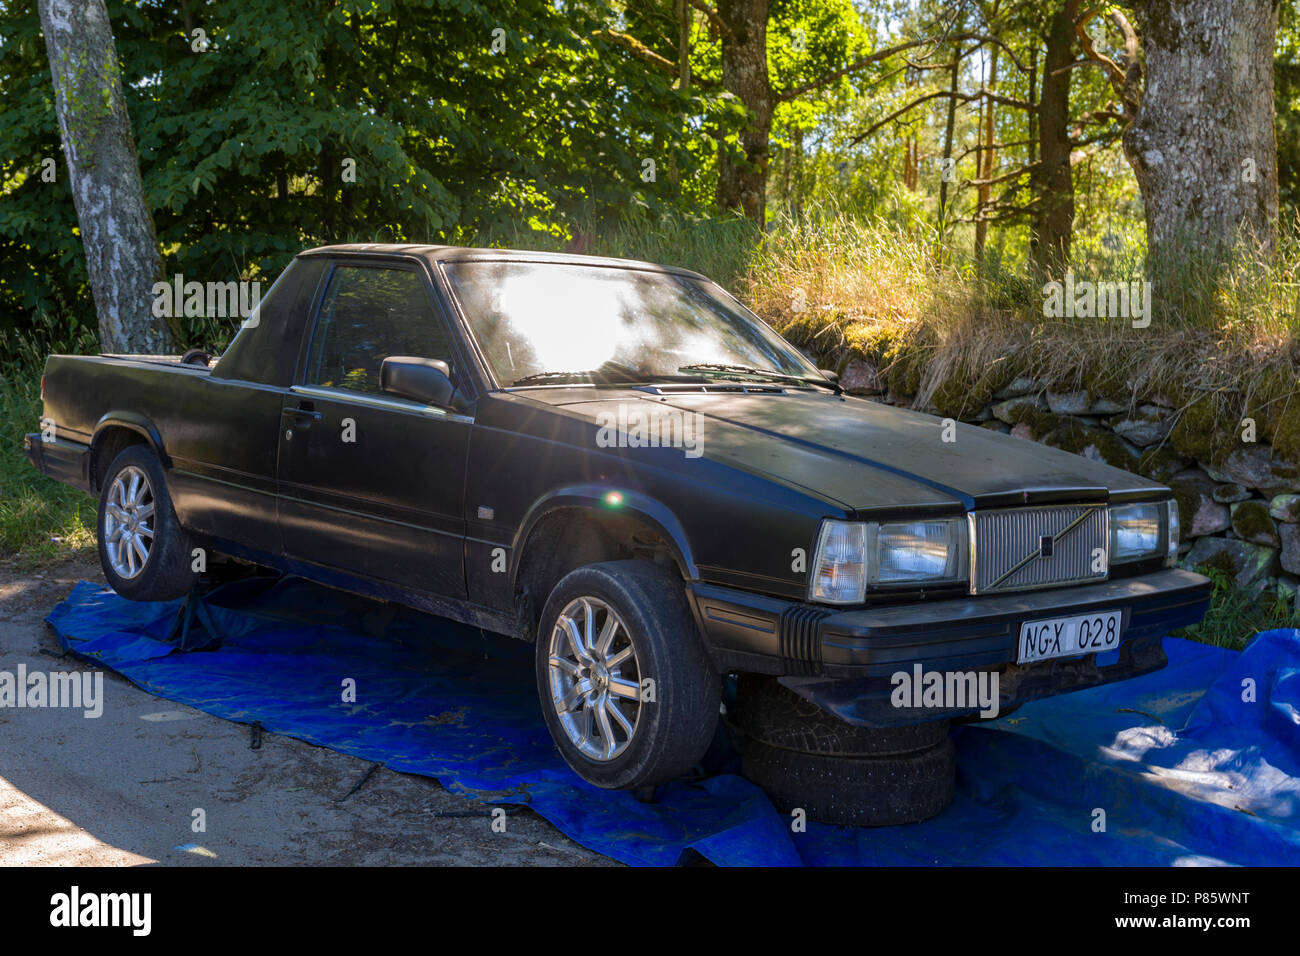 Old Volvo 740 sitting on car jack stands converted to a